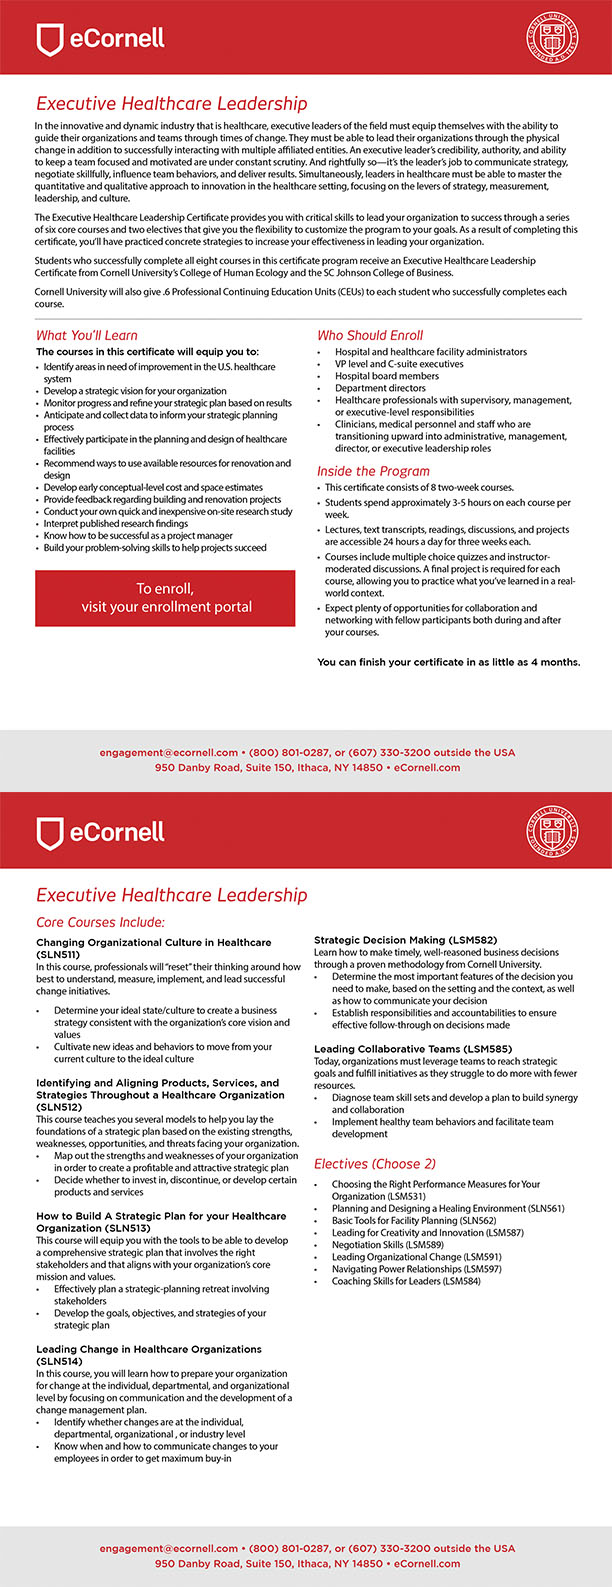 Executive Leadership for Healthcare Professionals Flyer for Corporations